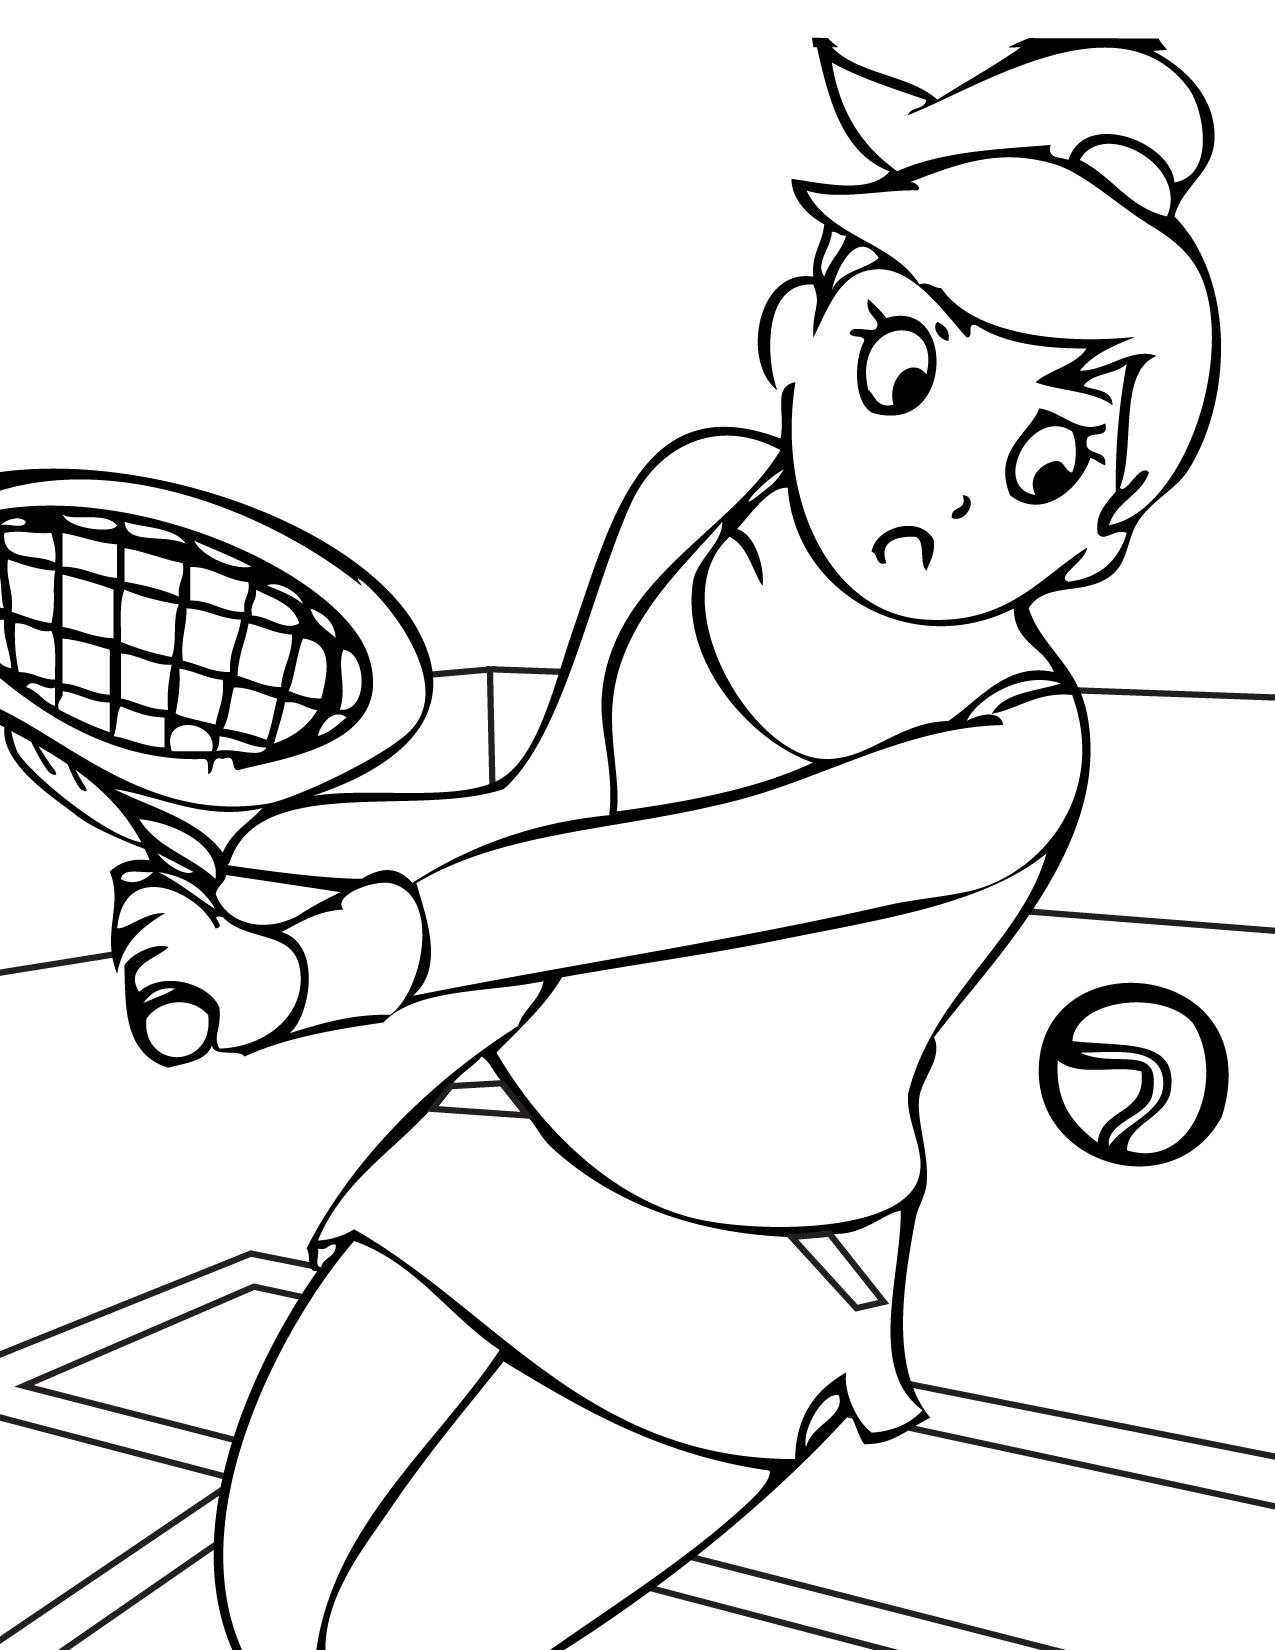 free sports coloring pages printable - photo#4